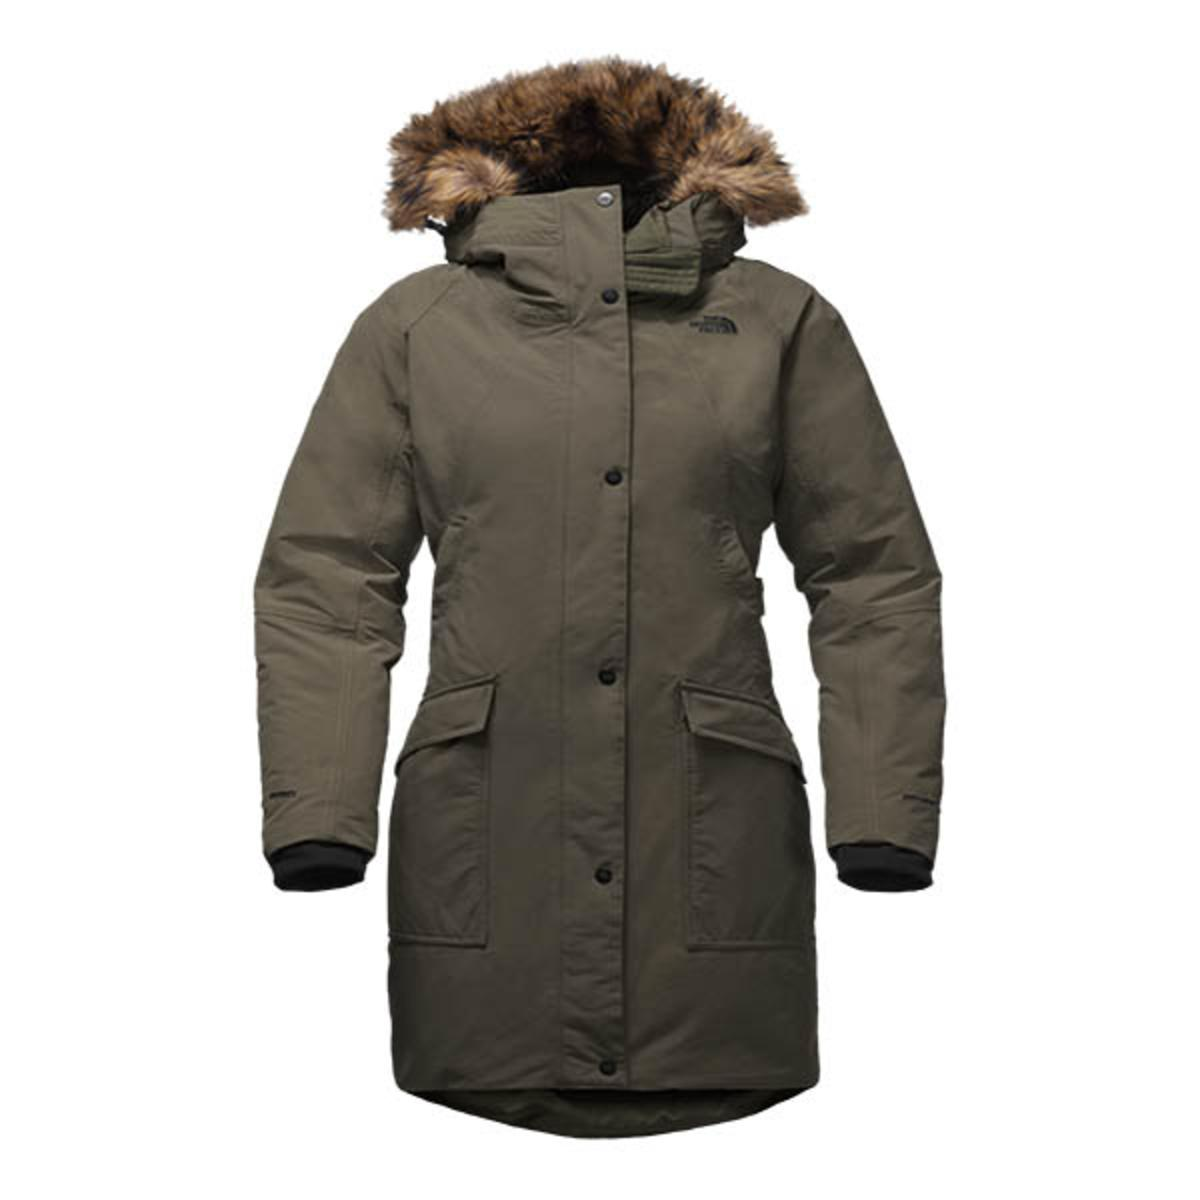 The North Face Womens Outer Boroughs Parka Jacket